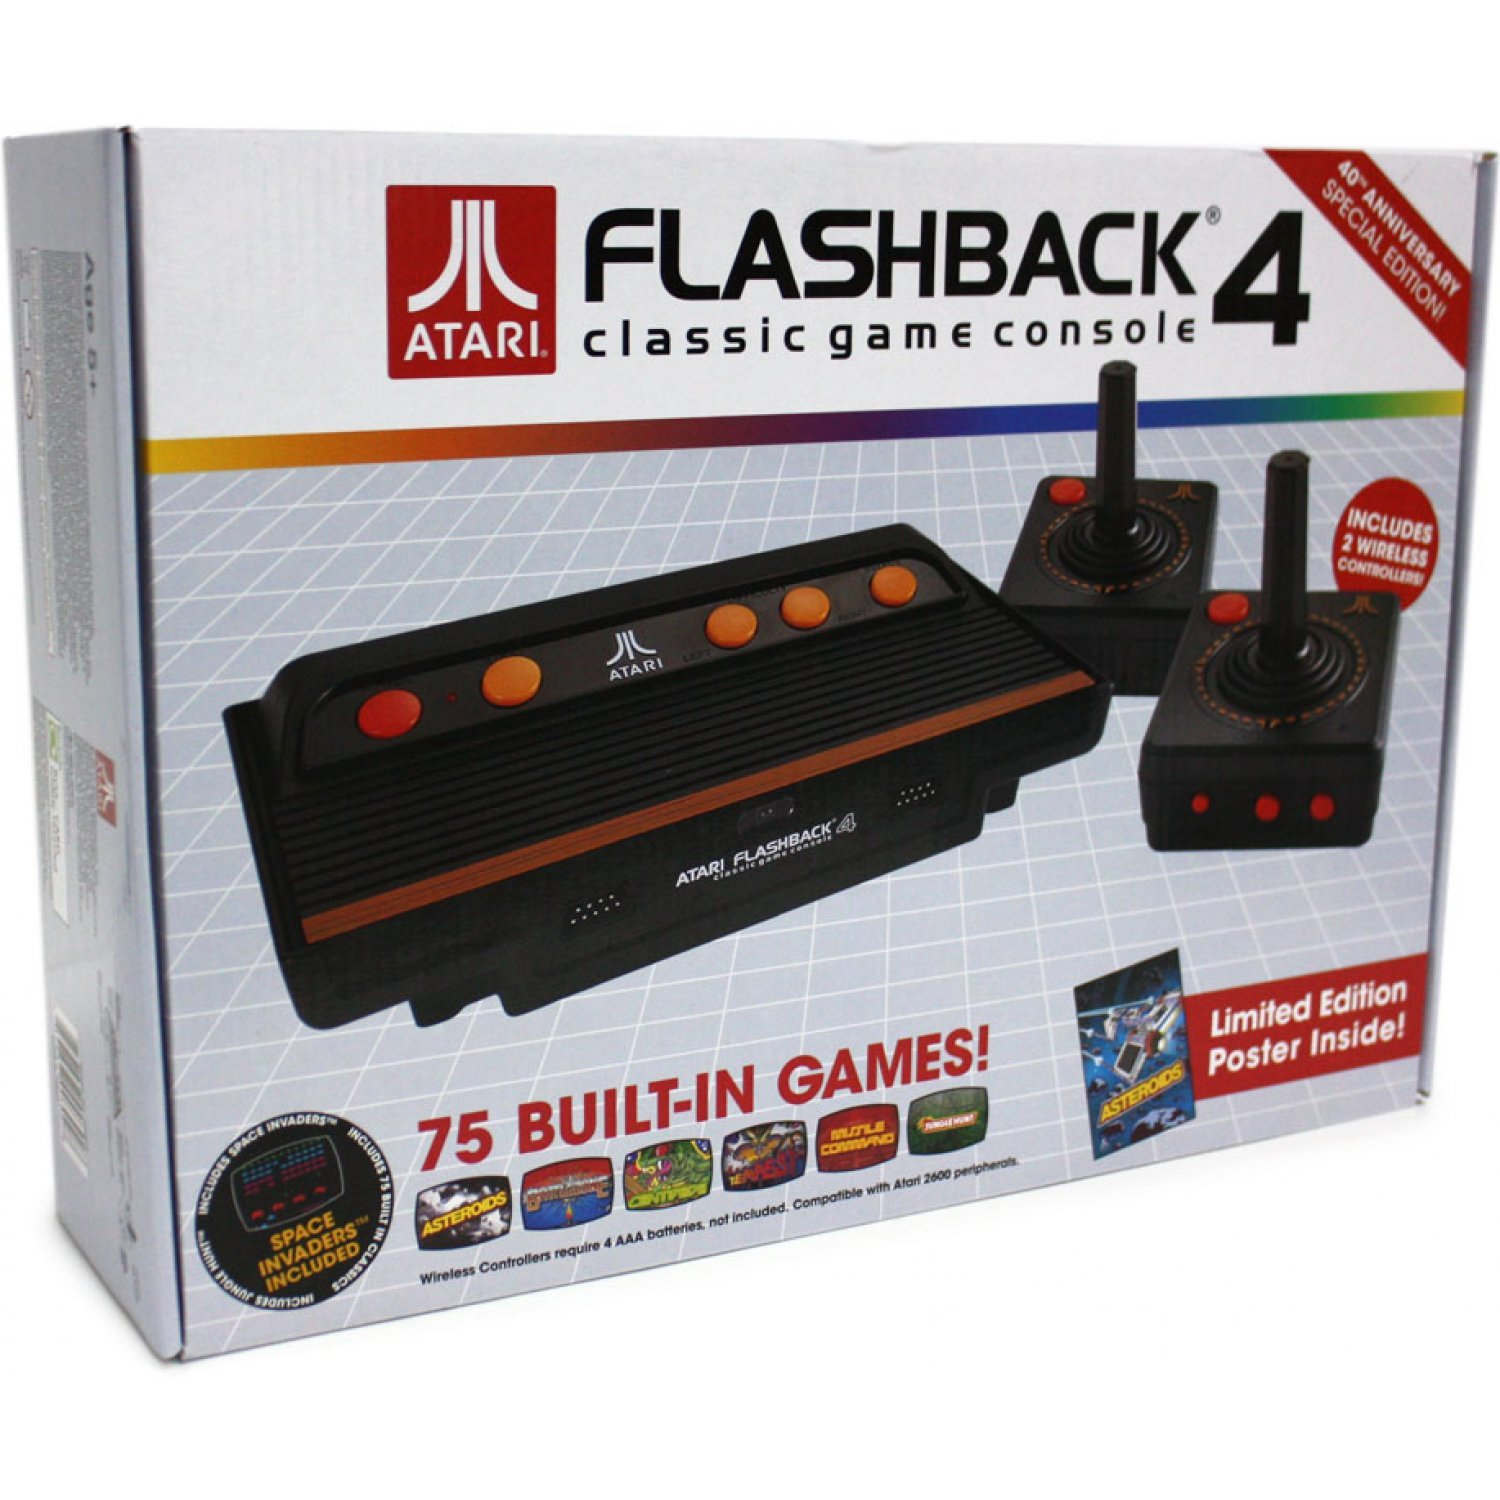 at games atari flashback 4 classic game console. Black Bedroom Furniture Sets. Home Design Ideas